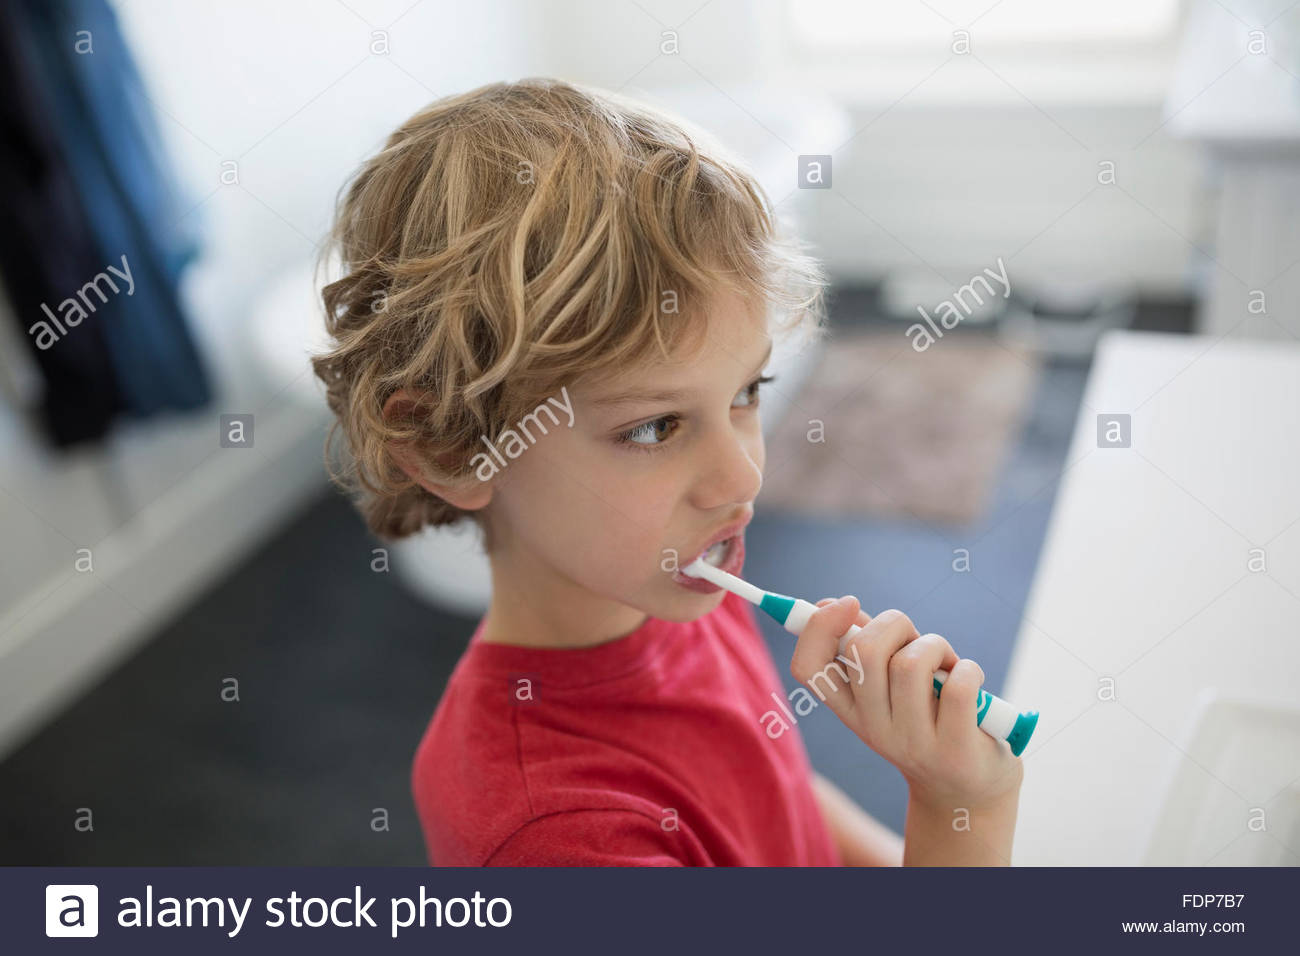 Boy brushing teeth in bathroom - Stock Image